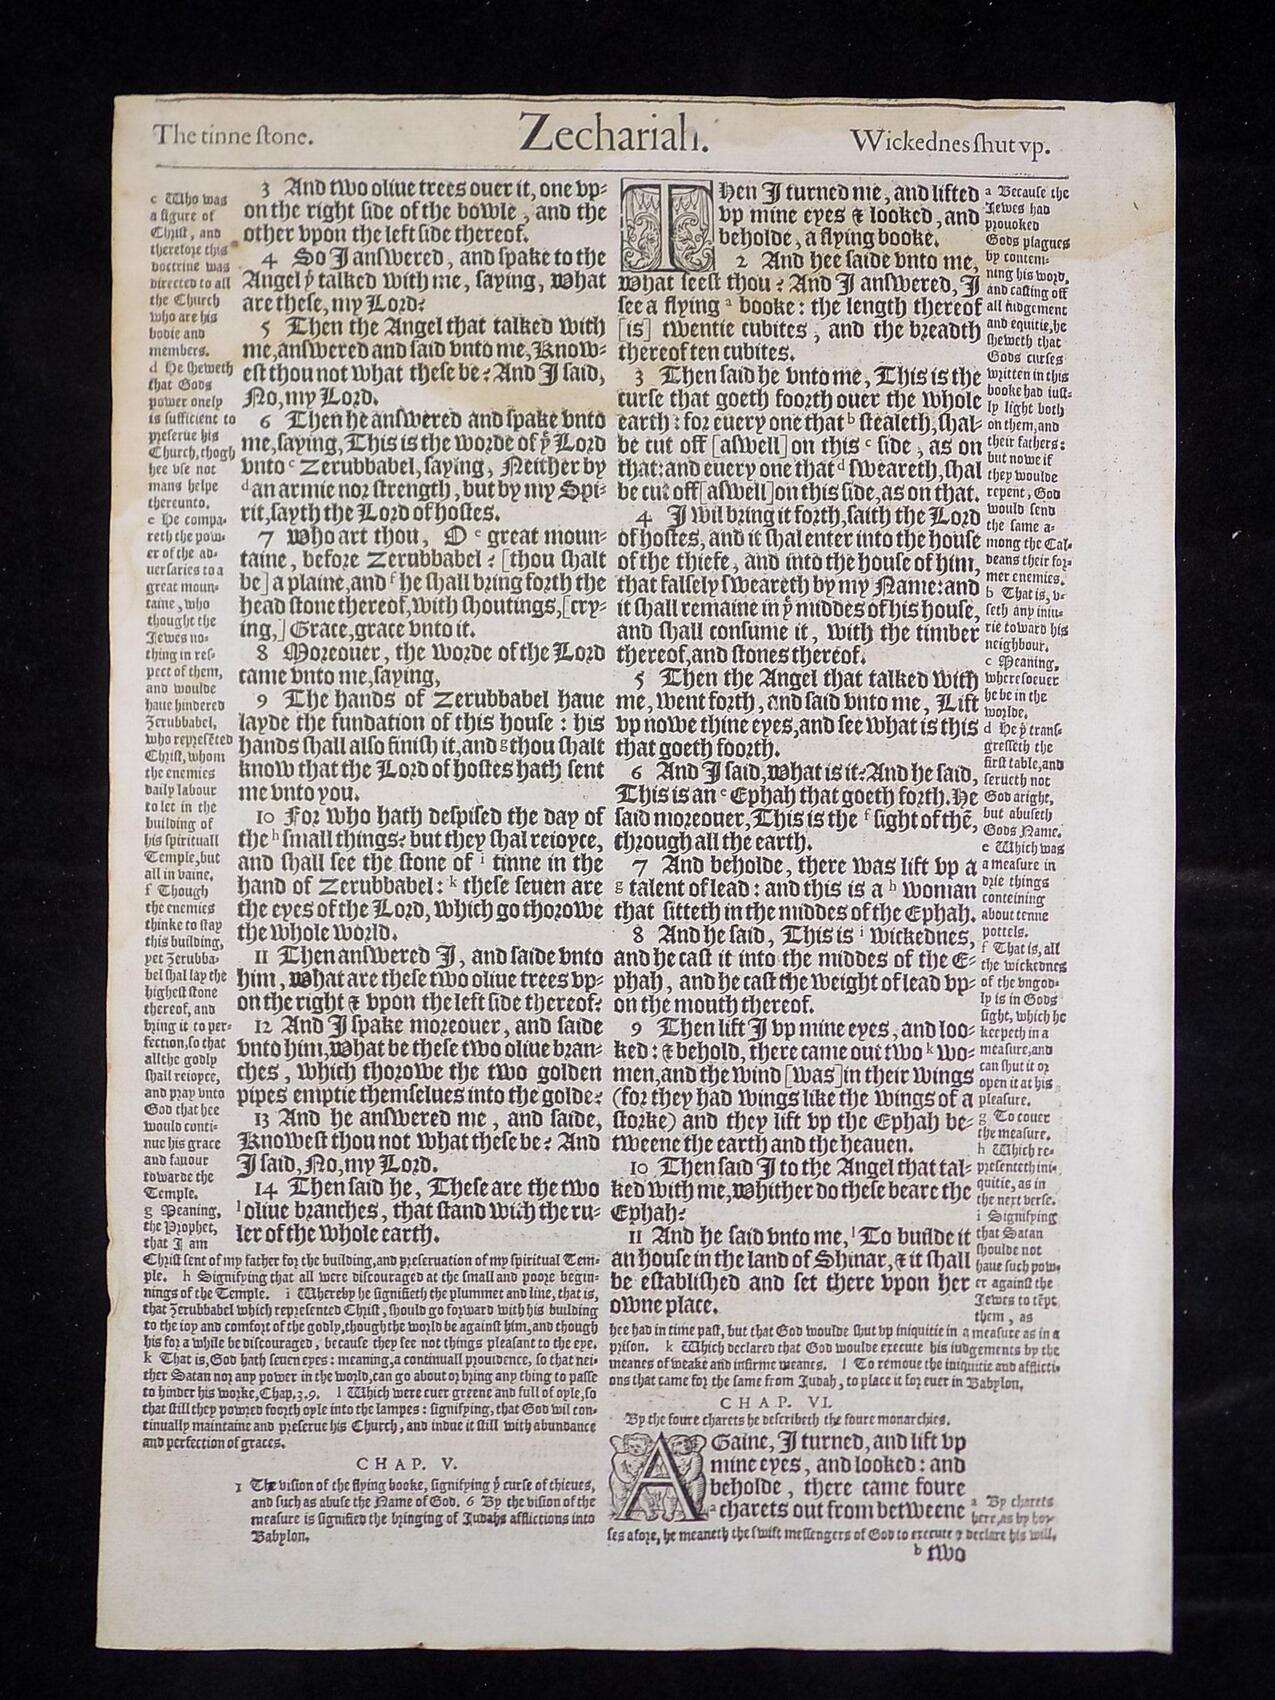 1583 NOBLEST GENEVA BIBLE LEAVES BOOK OF ZECHARIAH